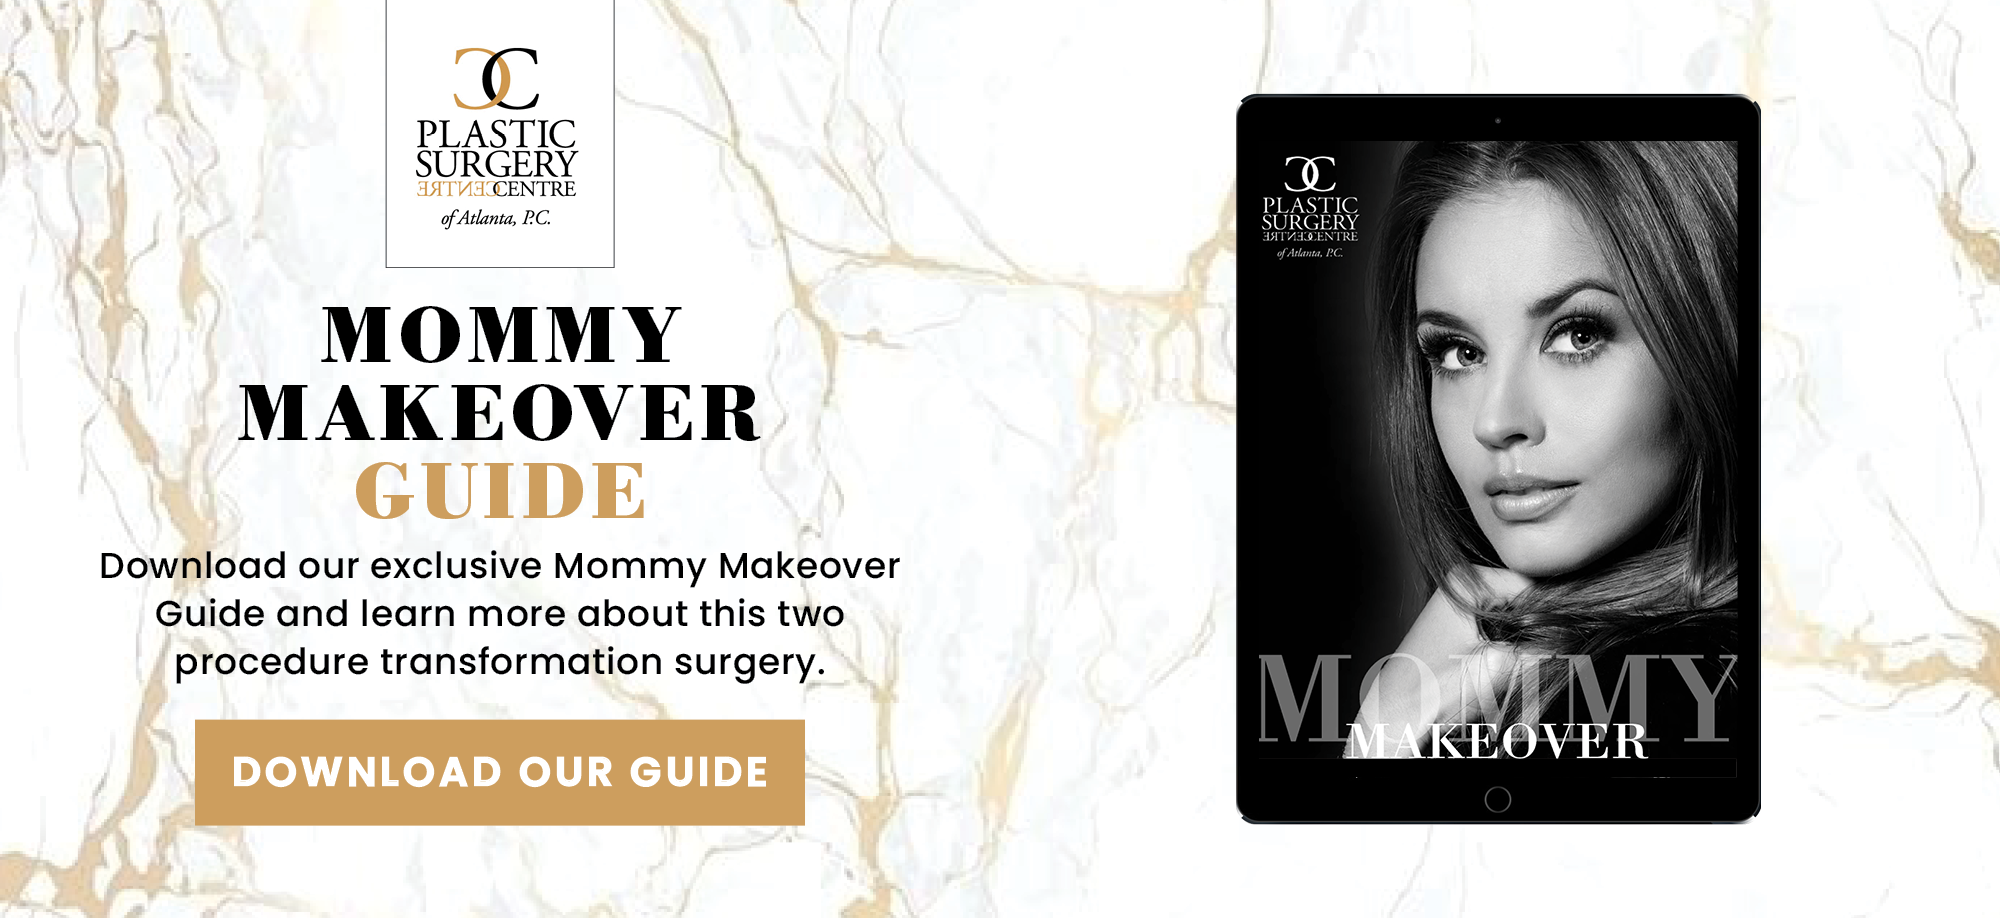 Mommy Makeover Guide CTA